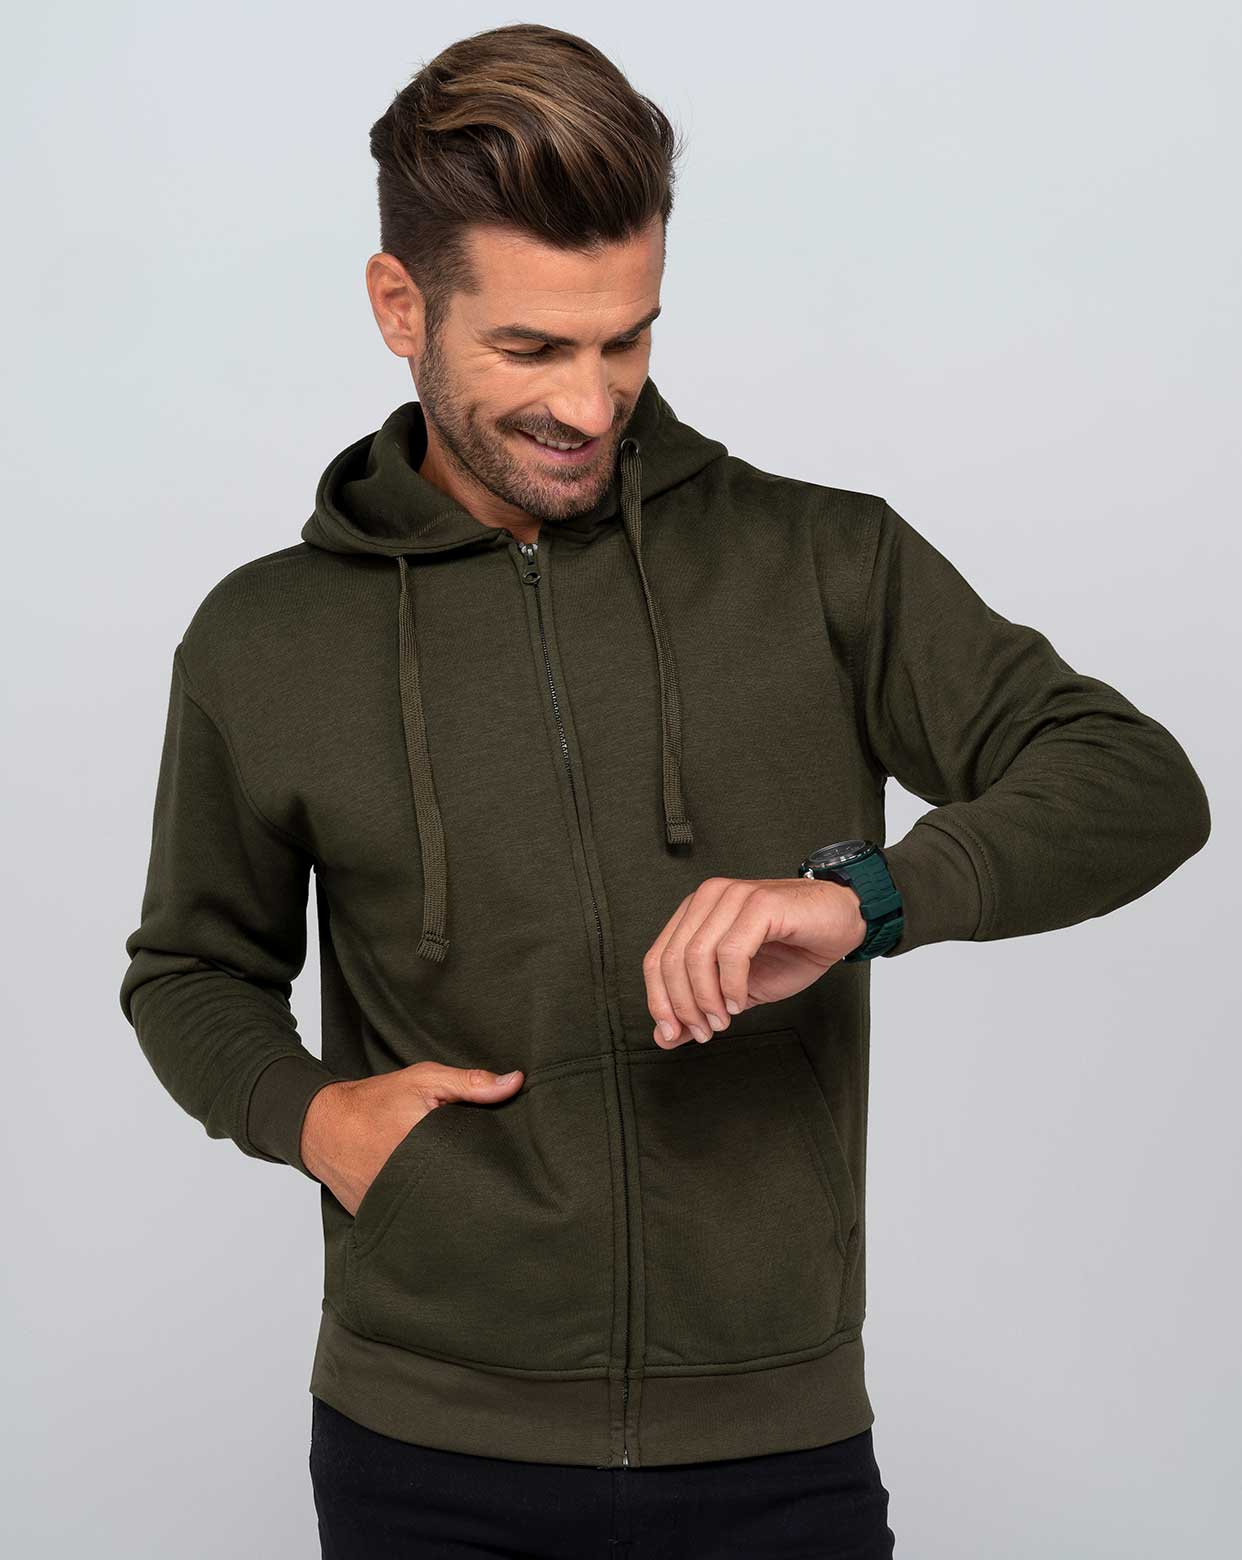 Hooded Sweatshirt Unisex - SWUAHOOD